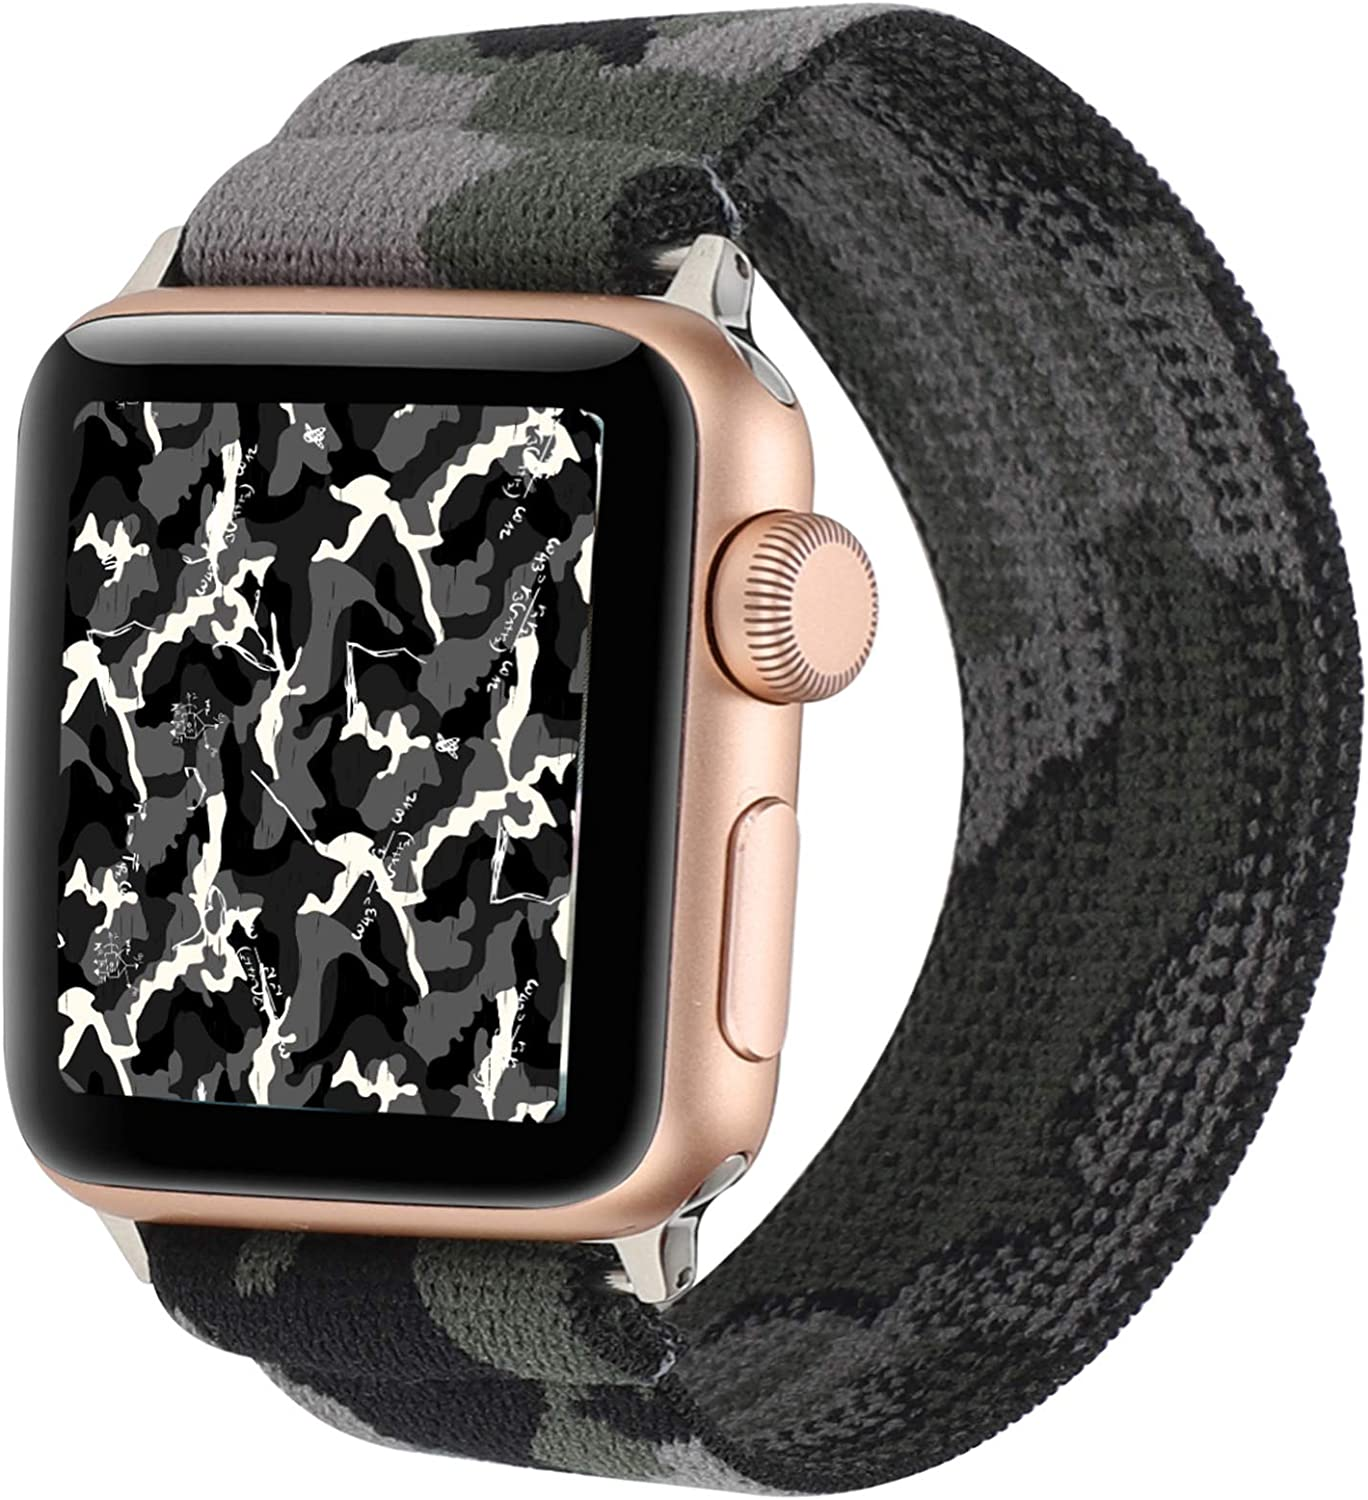 Stretchy Nylon Solo Loop Bands Compatible with Apple Watch 38mm 40mm, Adjustable Stretch Braided Sport Elastics Women Men Strap Compatible with iWatch Series 6/5/4/3/2/1 SE 38mm 40mm Camouflage Color